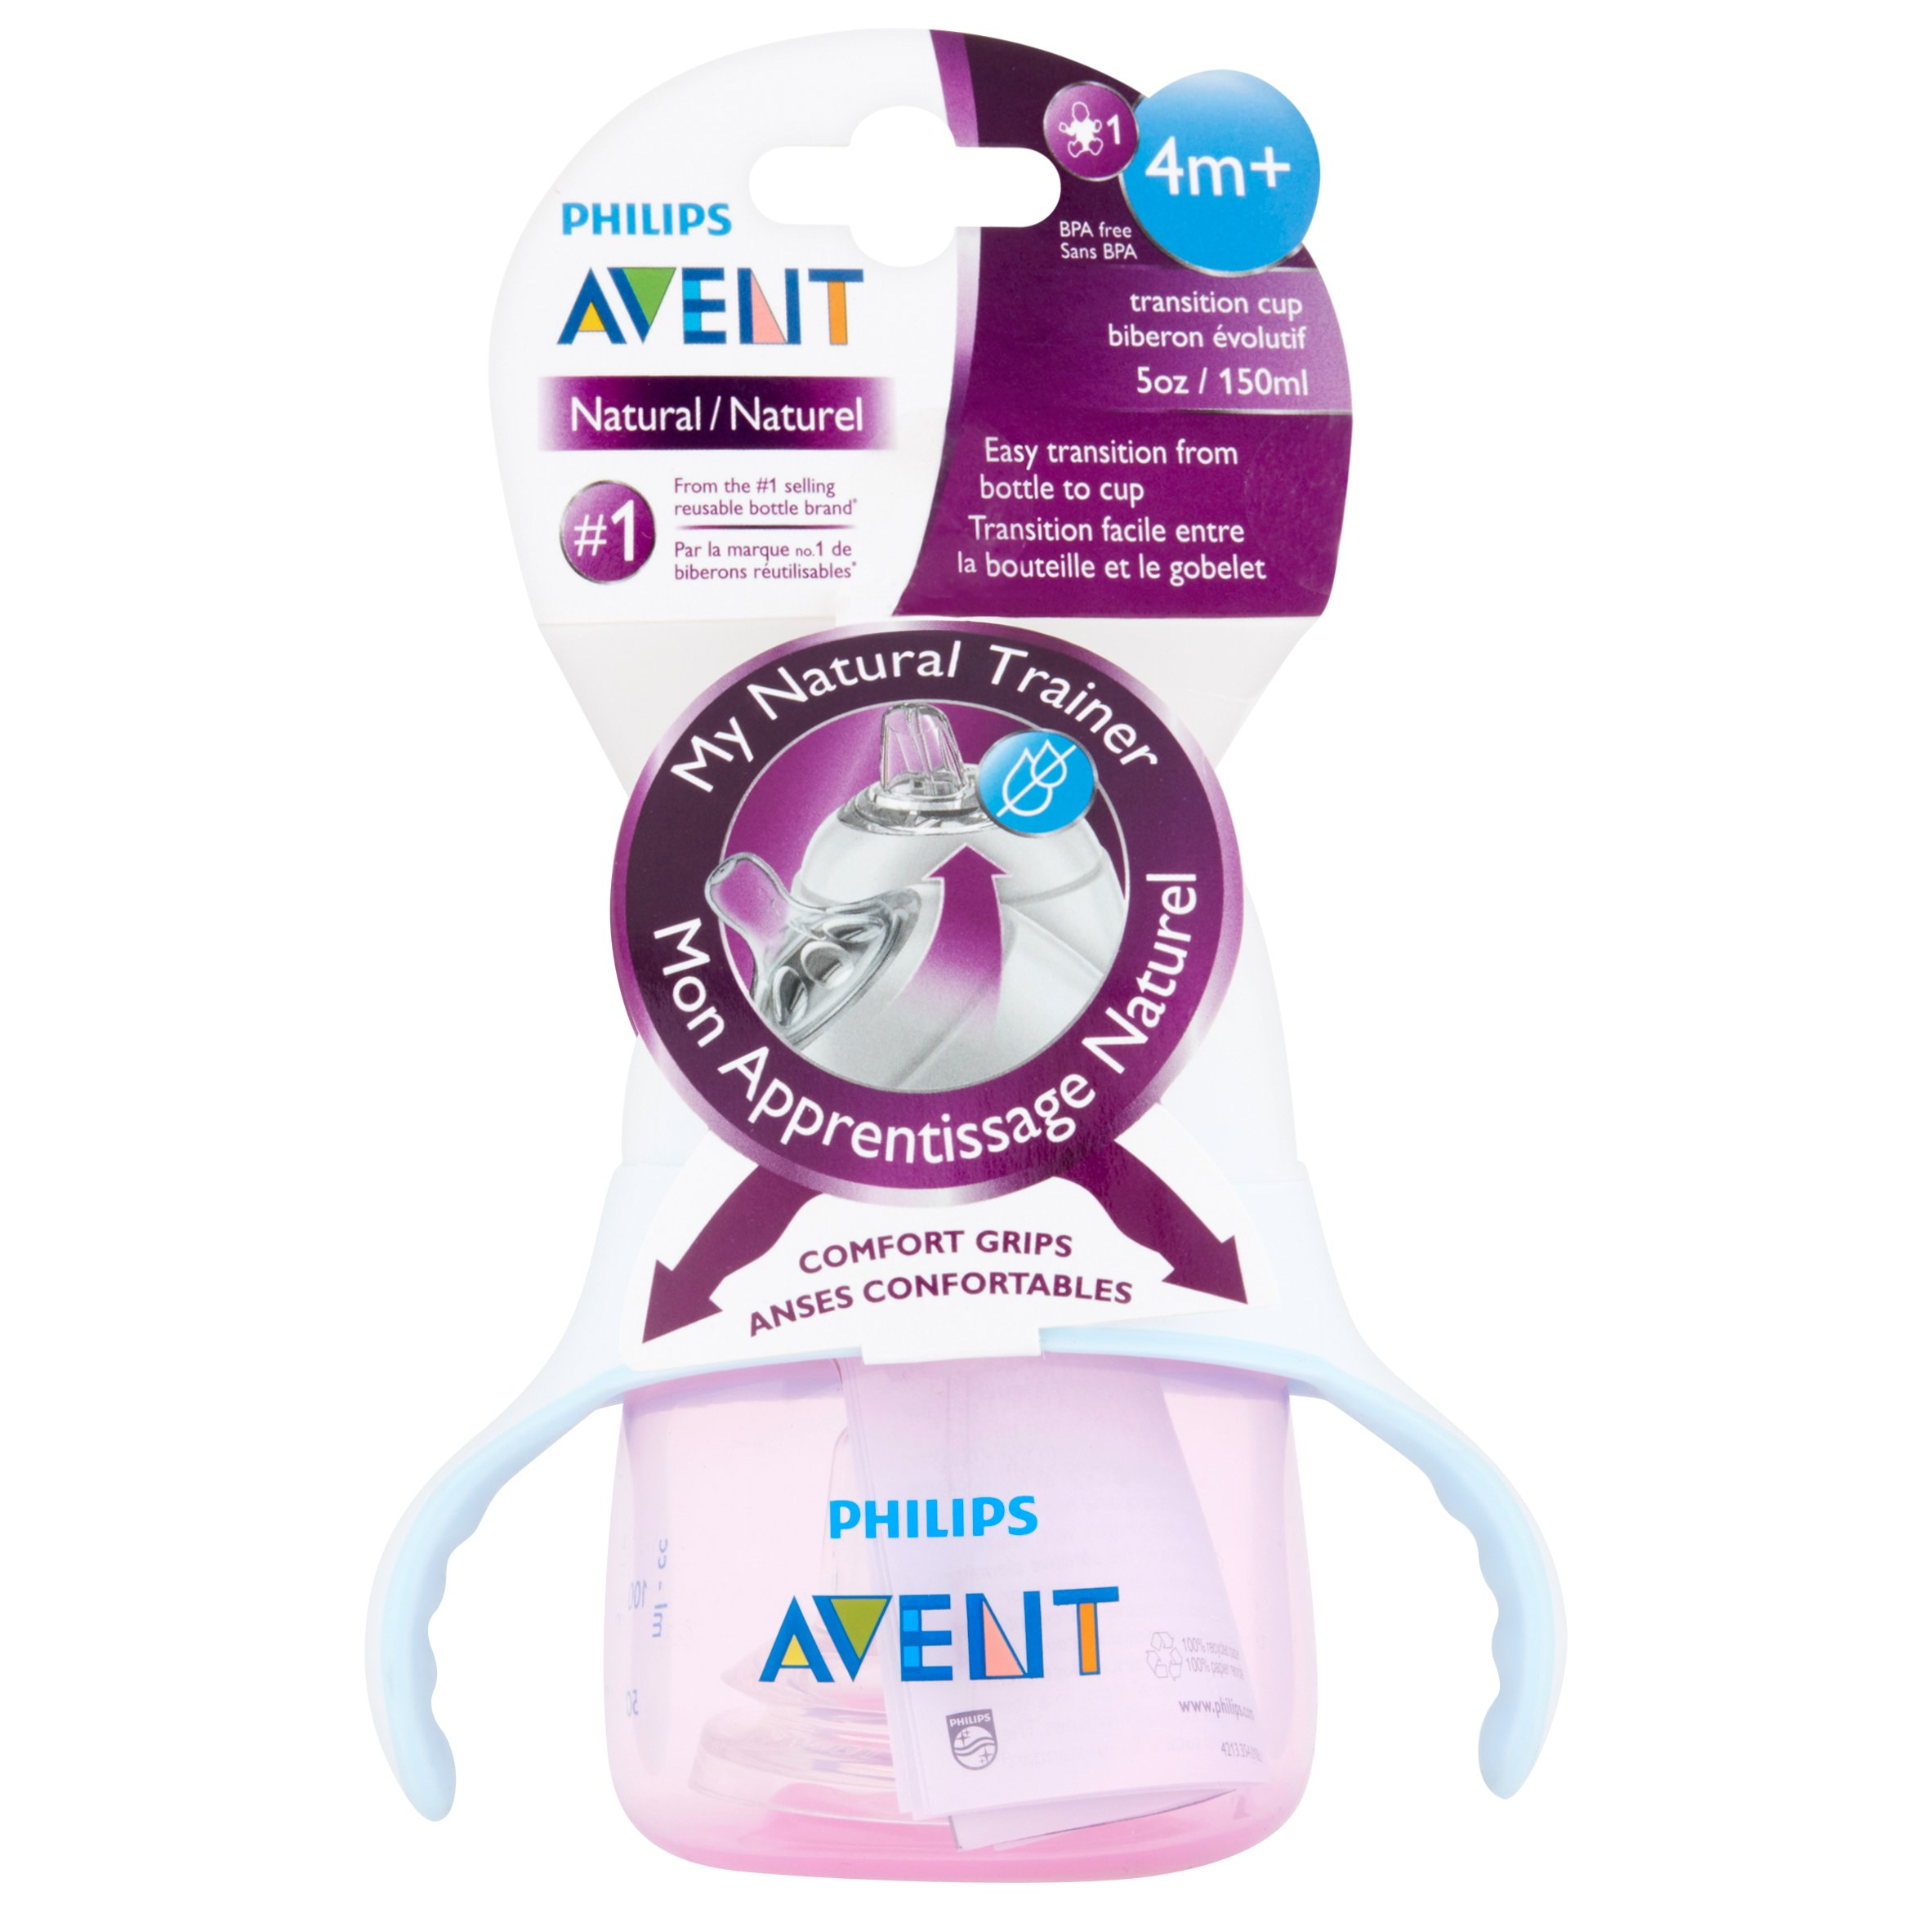 Philips Avent SCF251 03 My Natural Trainer Cup 5oz, 1pk clear by Philips AVENT